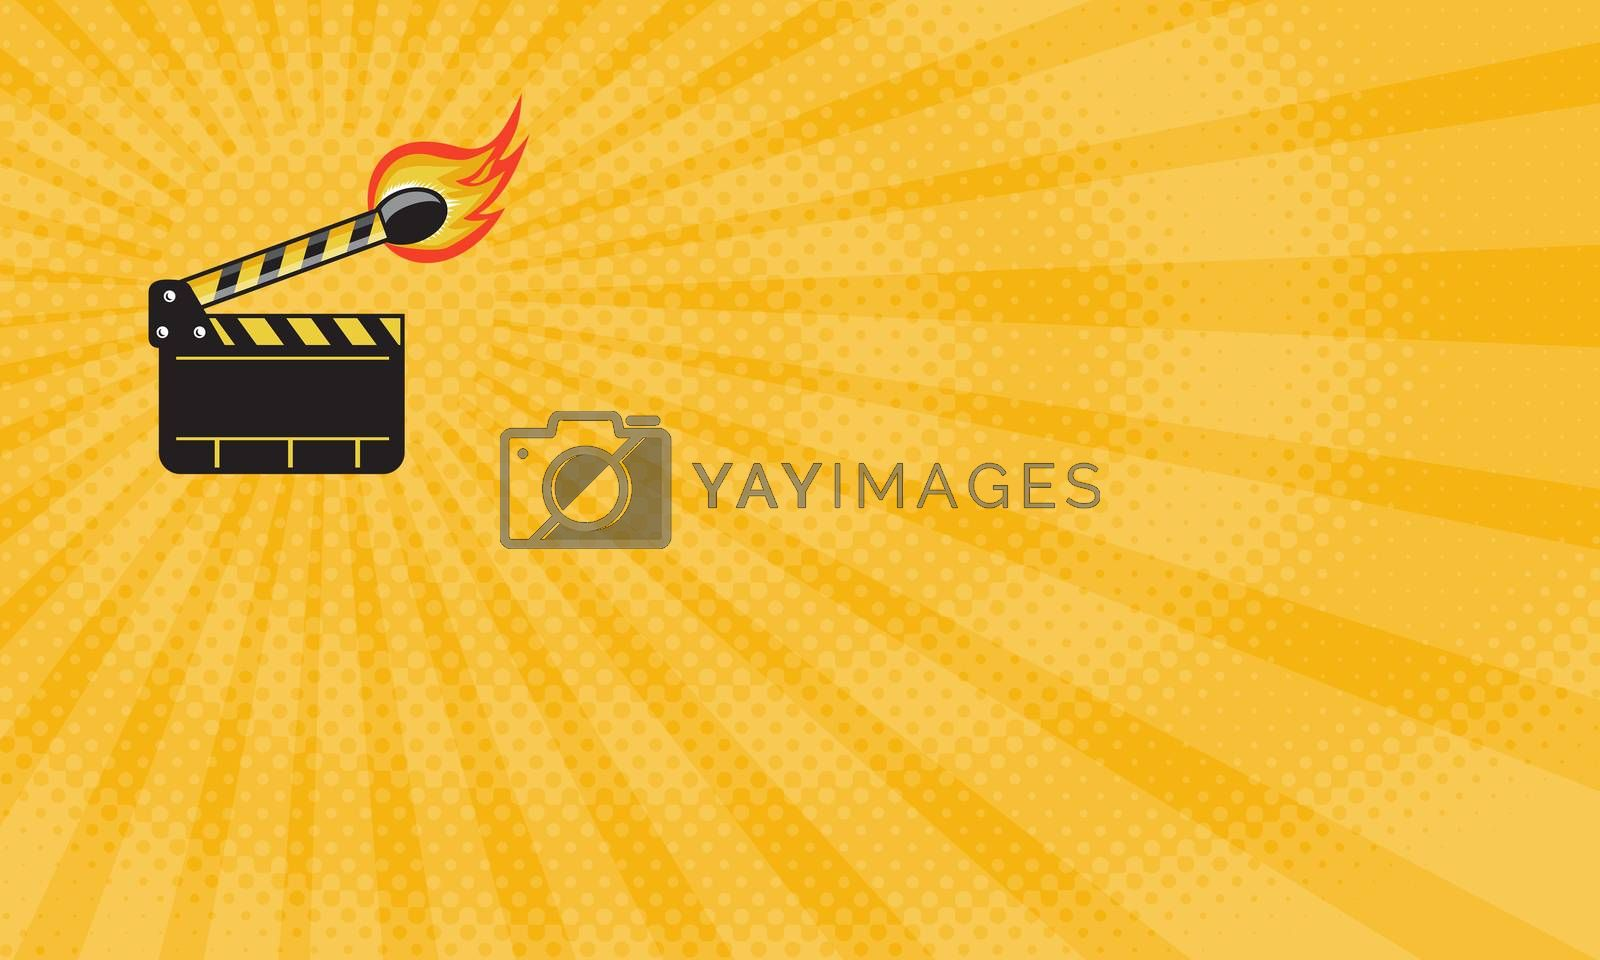 Business card showing Illustration of a clapper board match stick on fire set done in retro style.